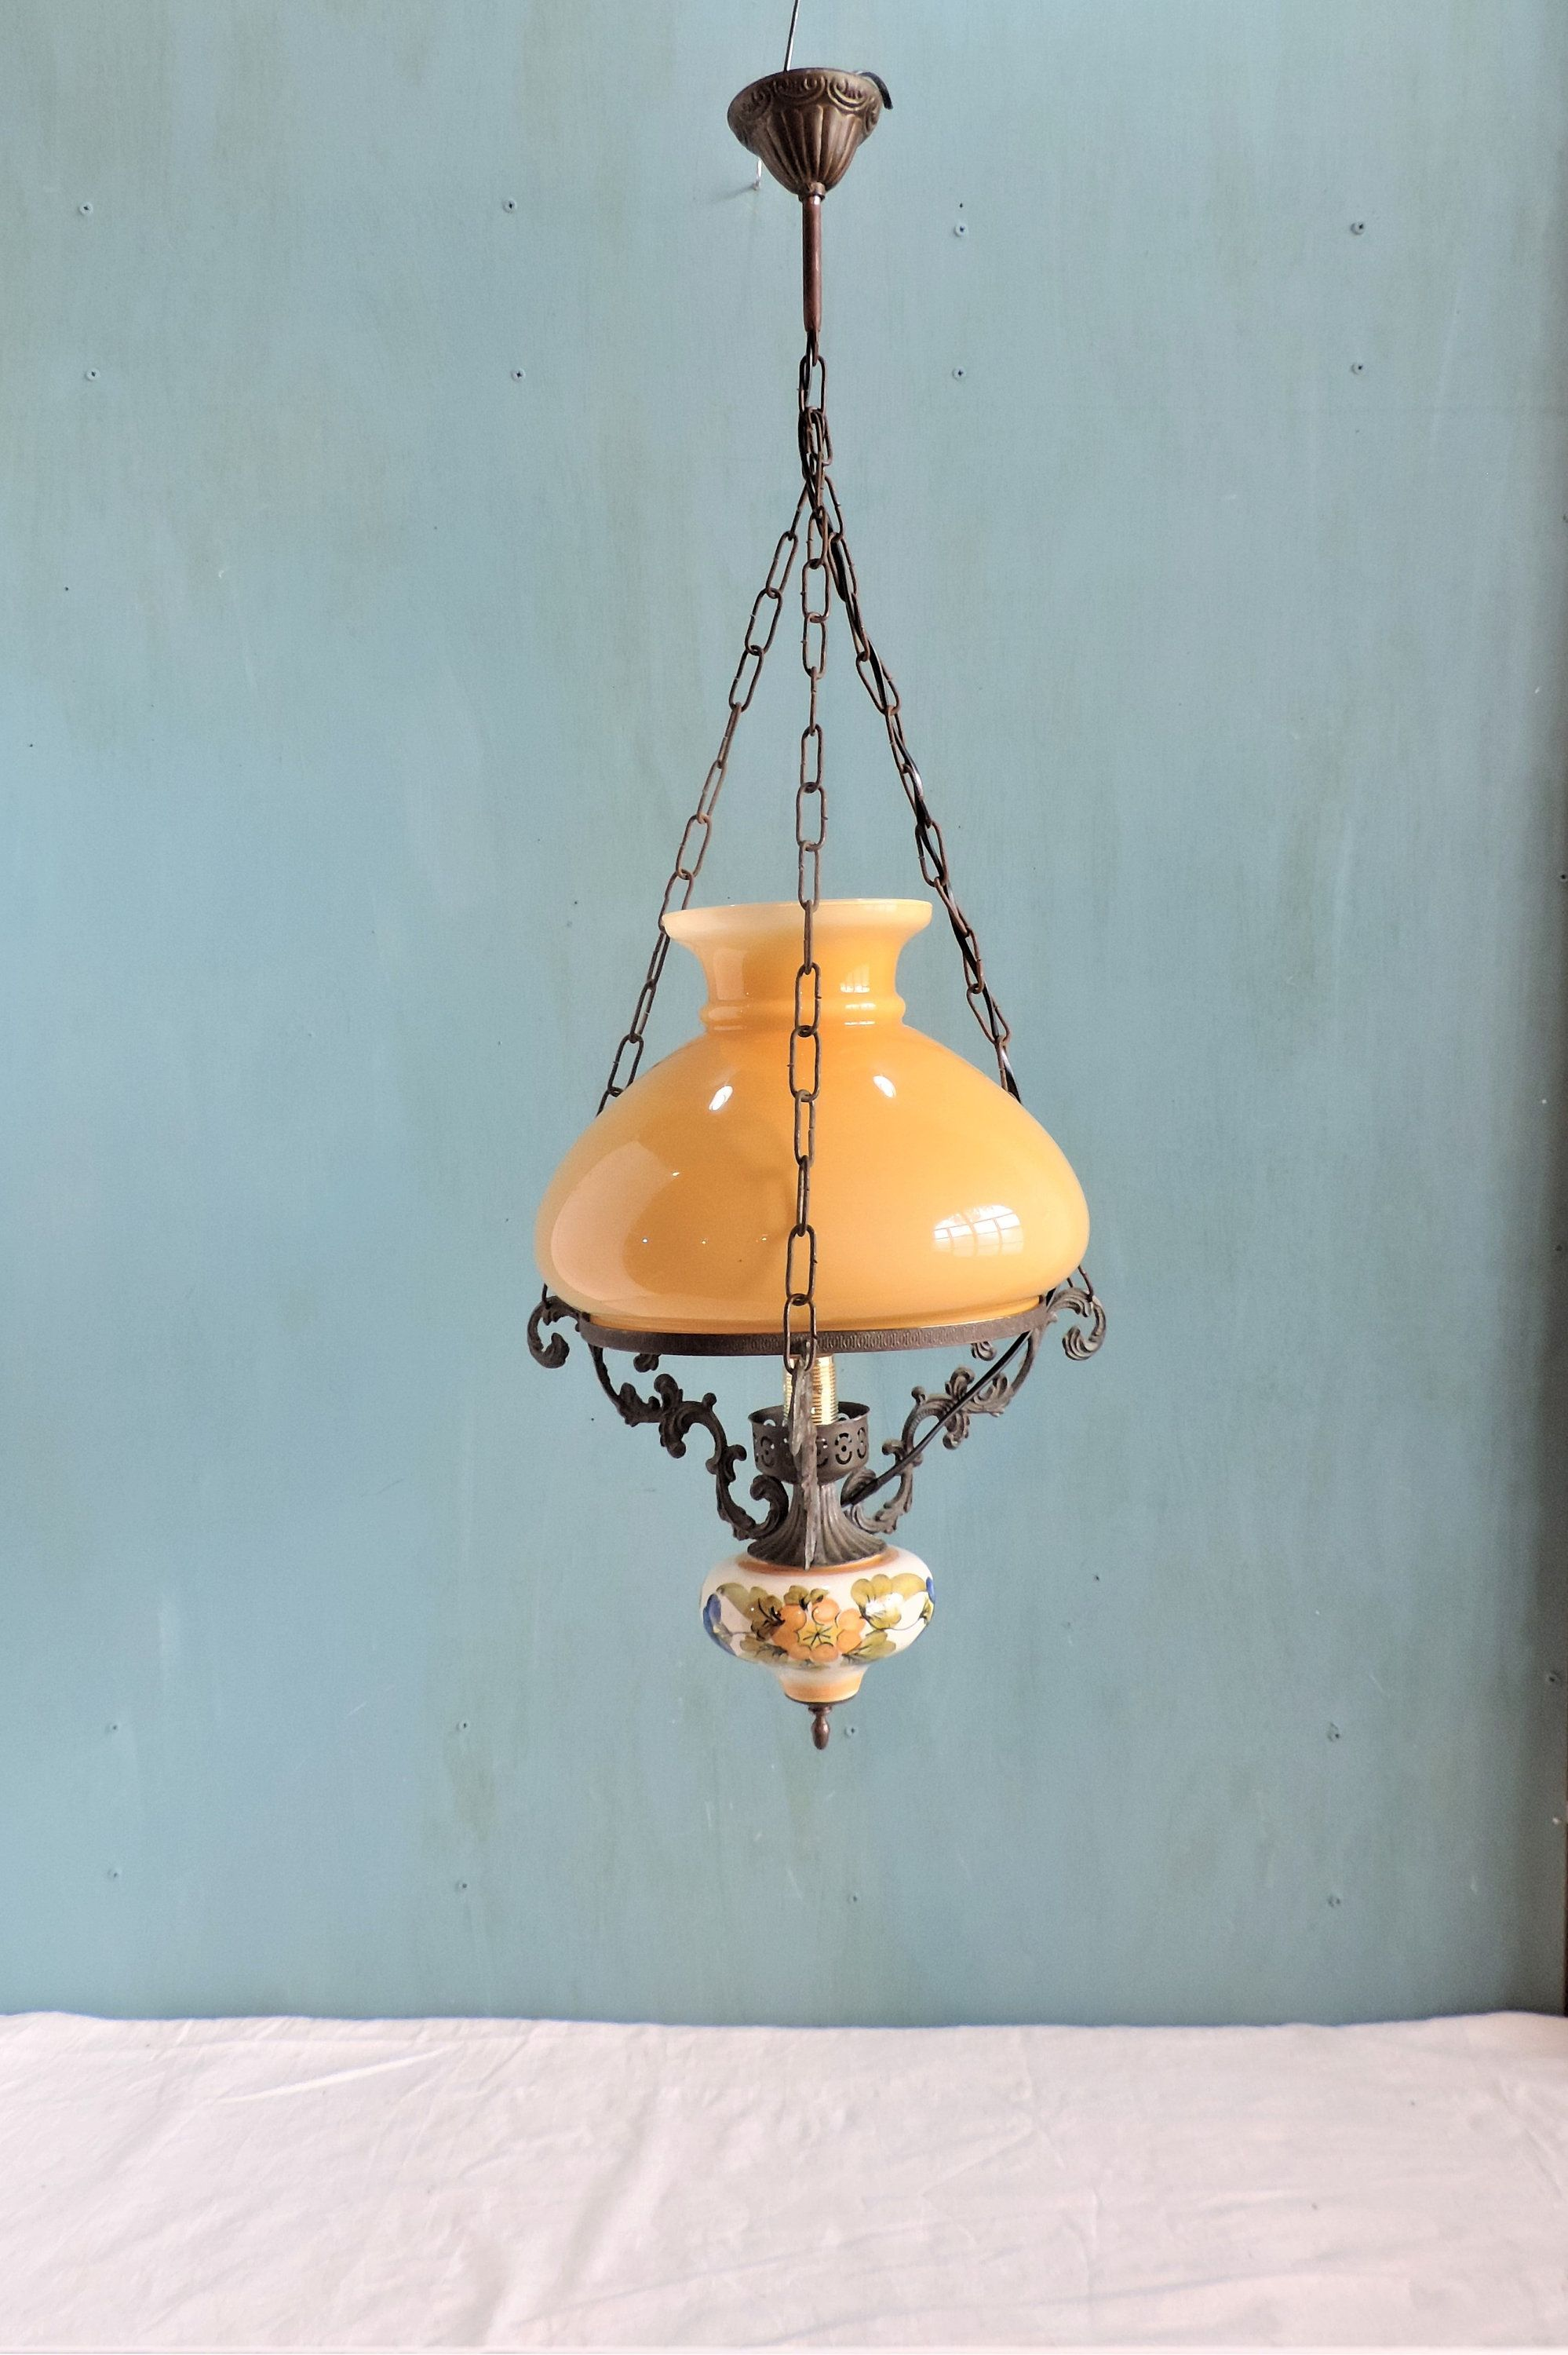 A Vintage French Hurricane Pendant Lamp Ceiling Light With